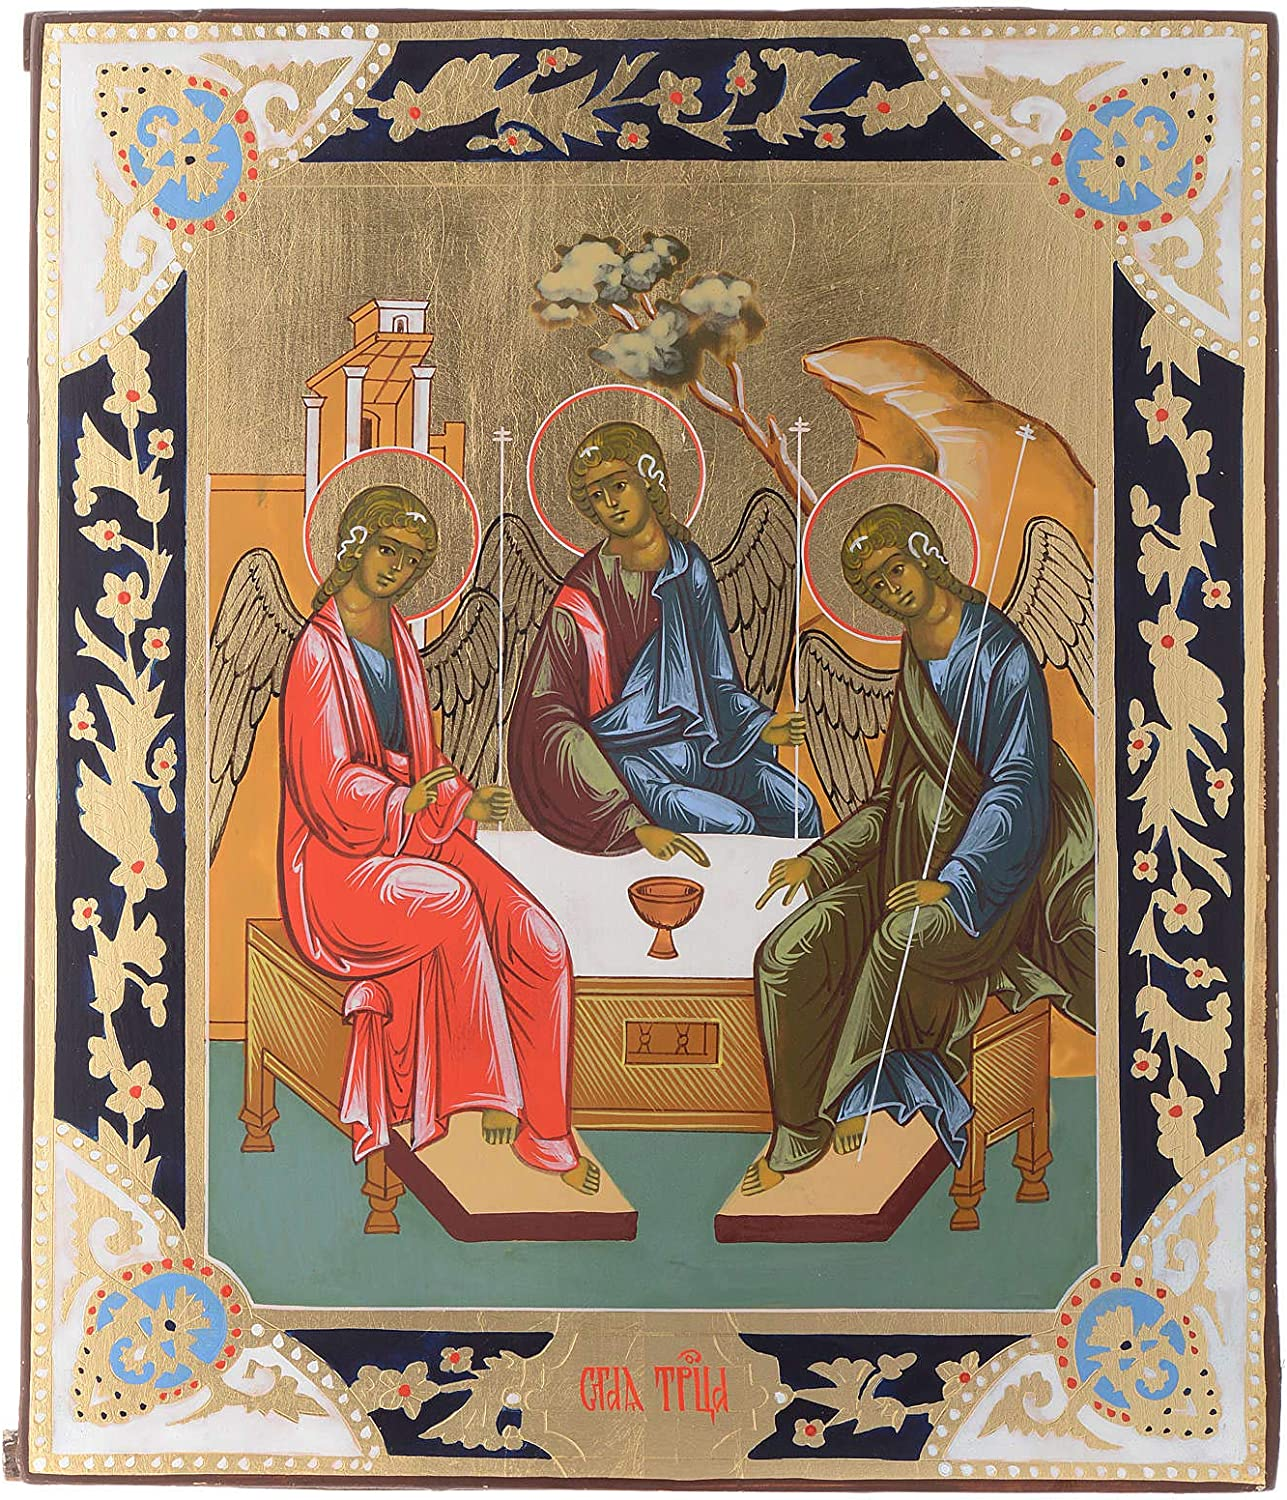 Bombing free shipping Cheap SALE Start Russian icon Holy Painting Trinity Panel